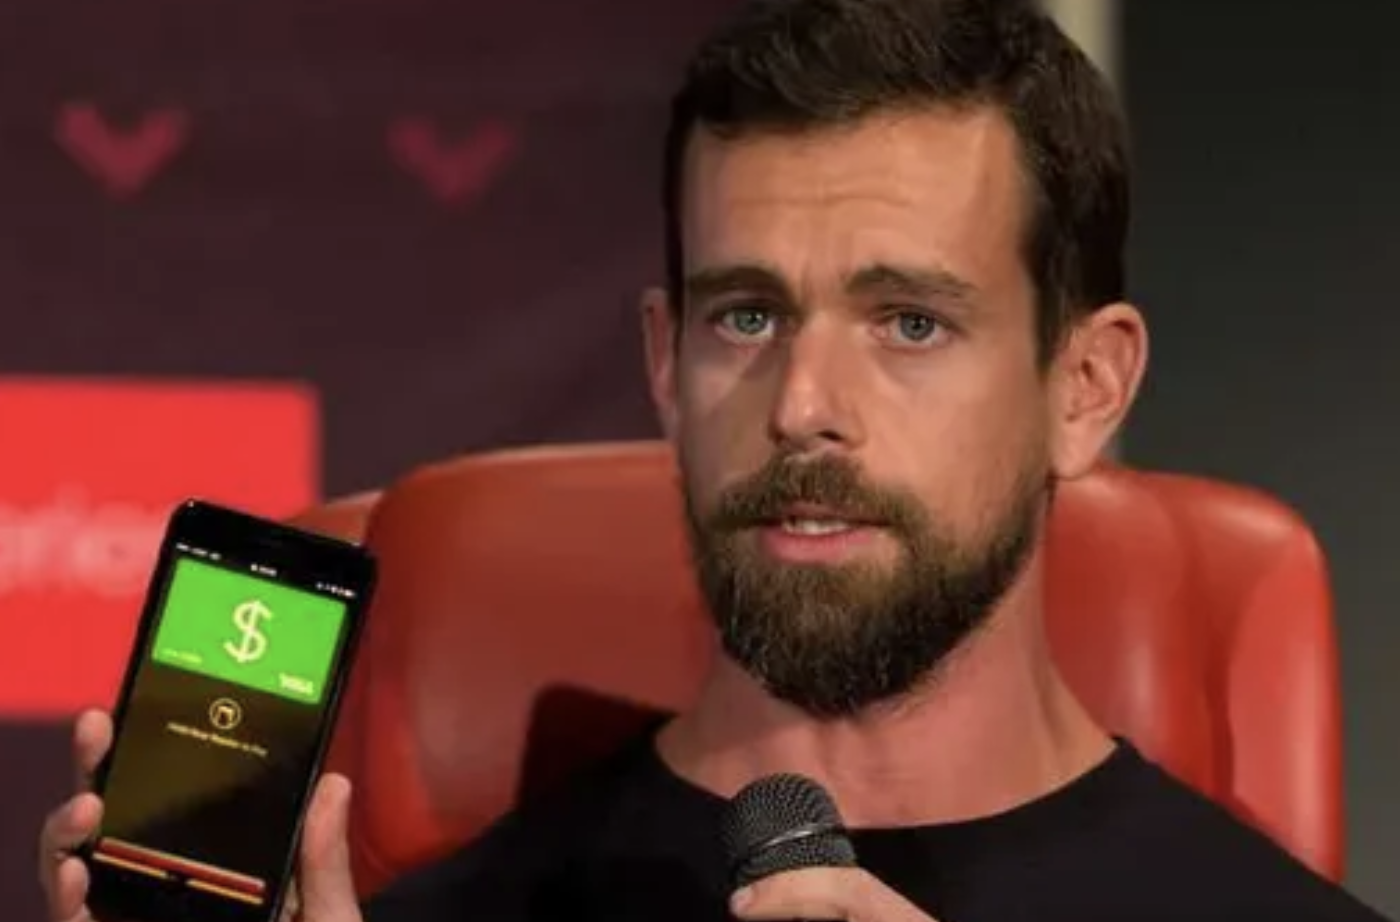 Jack Dorsey launches in-house bank through Square Inc